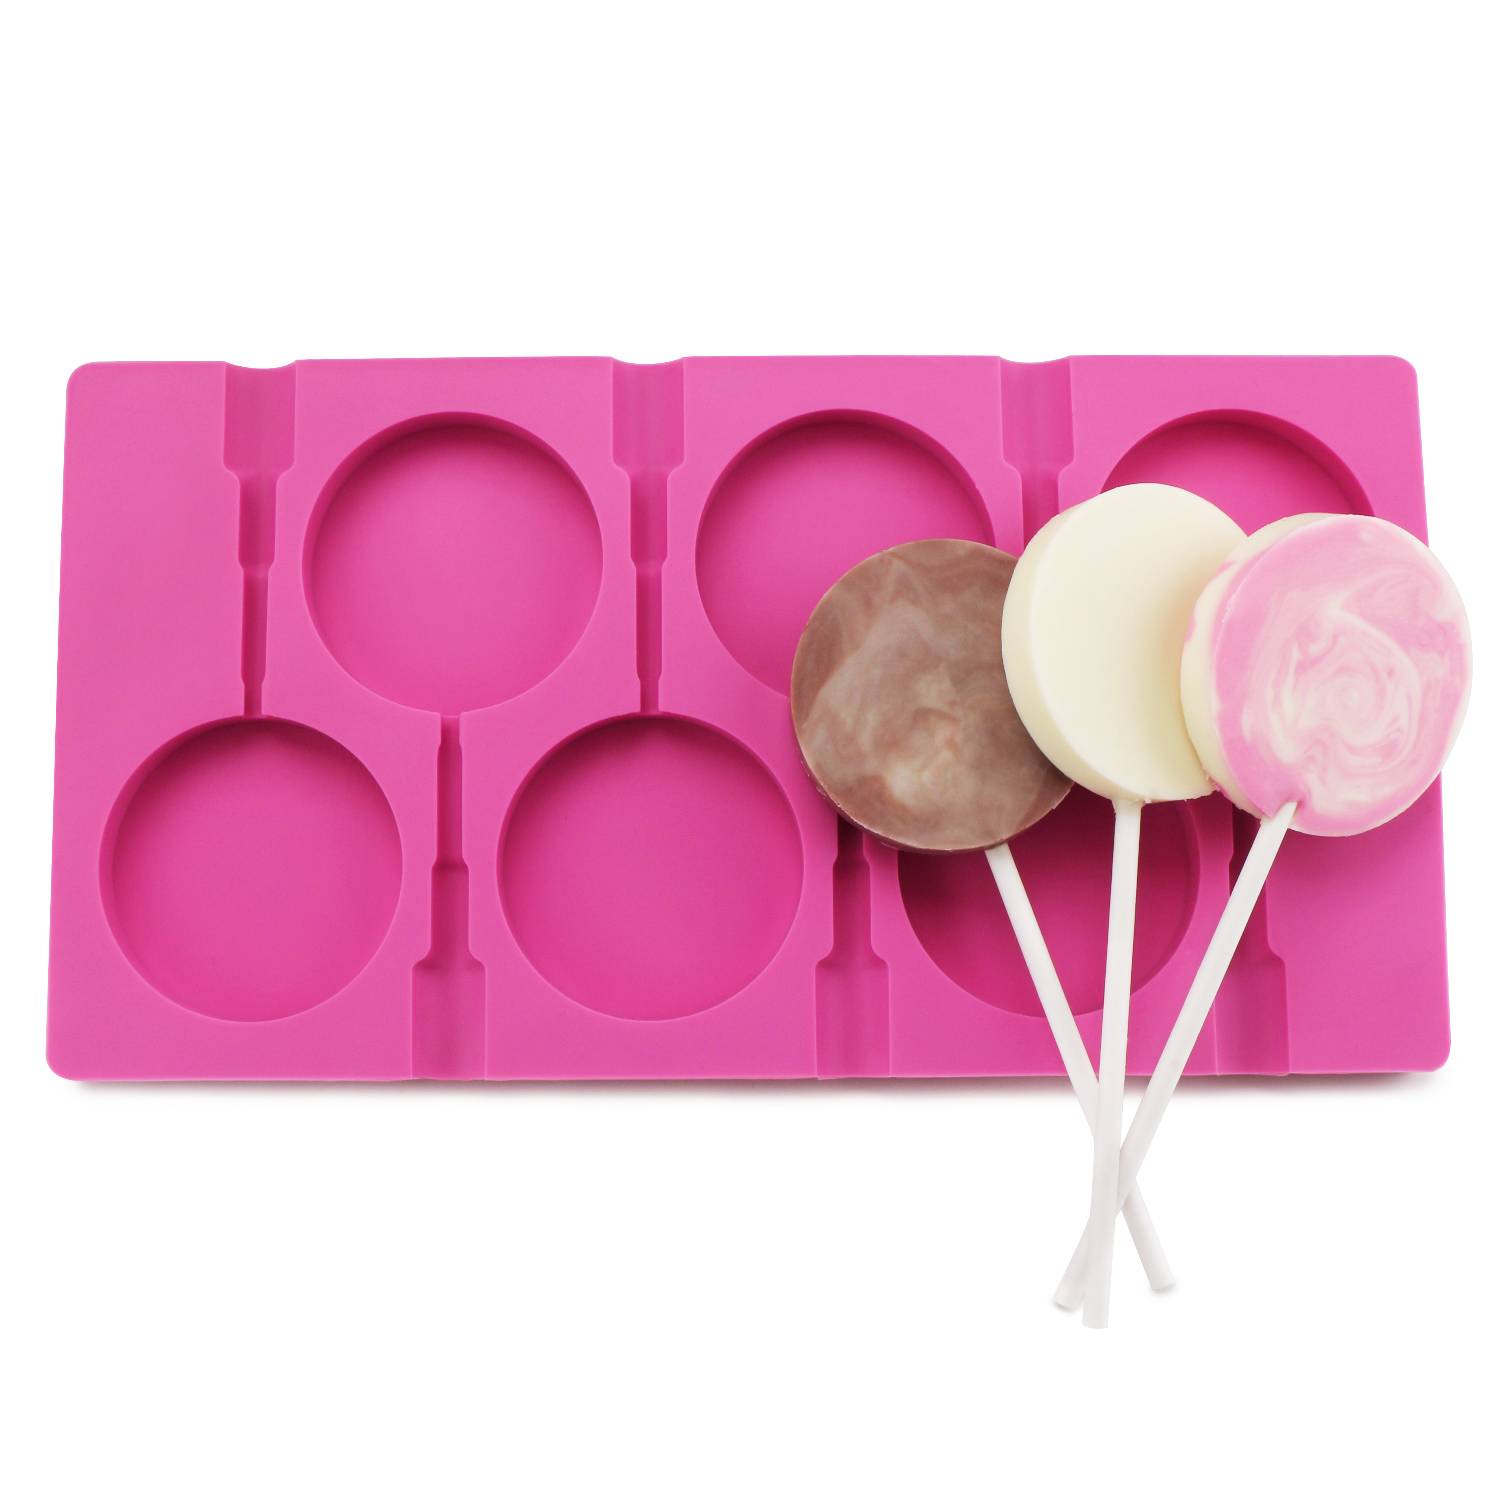 Beasea 6 Cavity Round Lollipop Mold